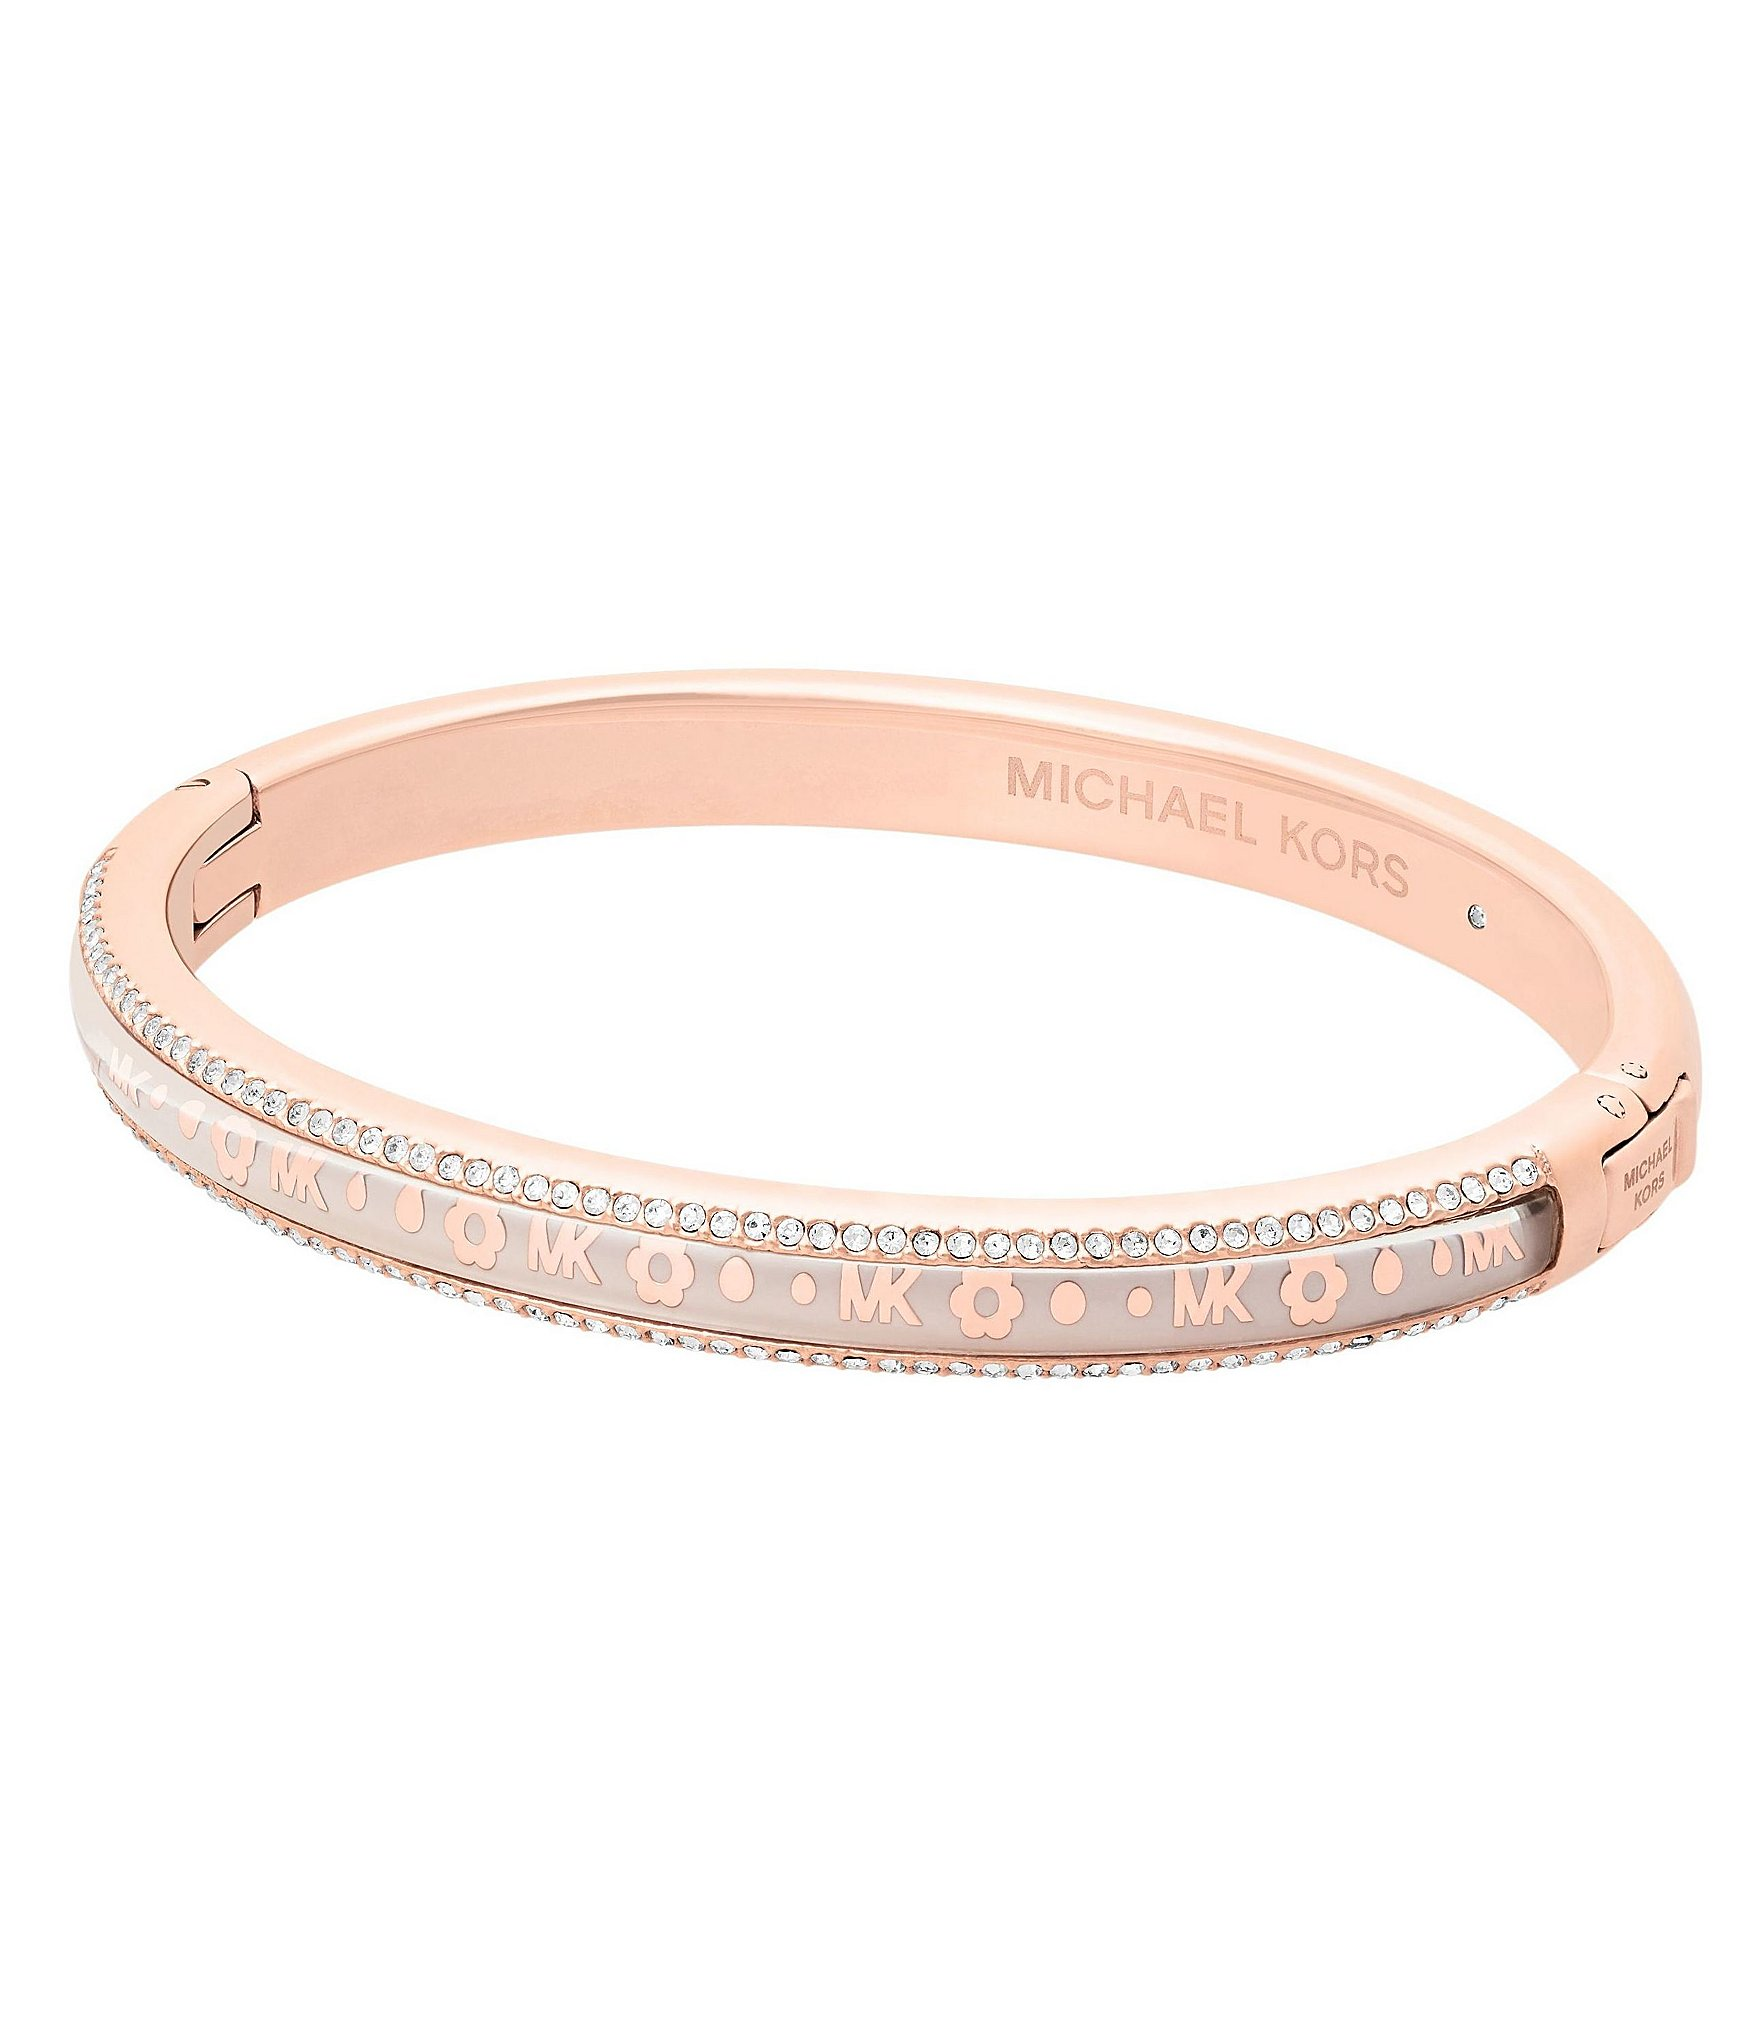 Michael Kors Womens Jewelry Dillards